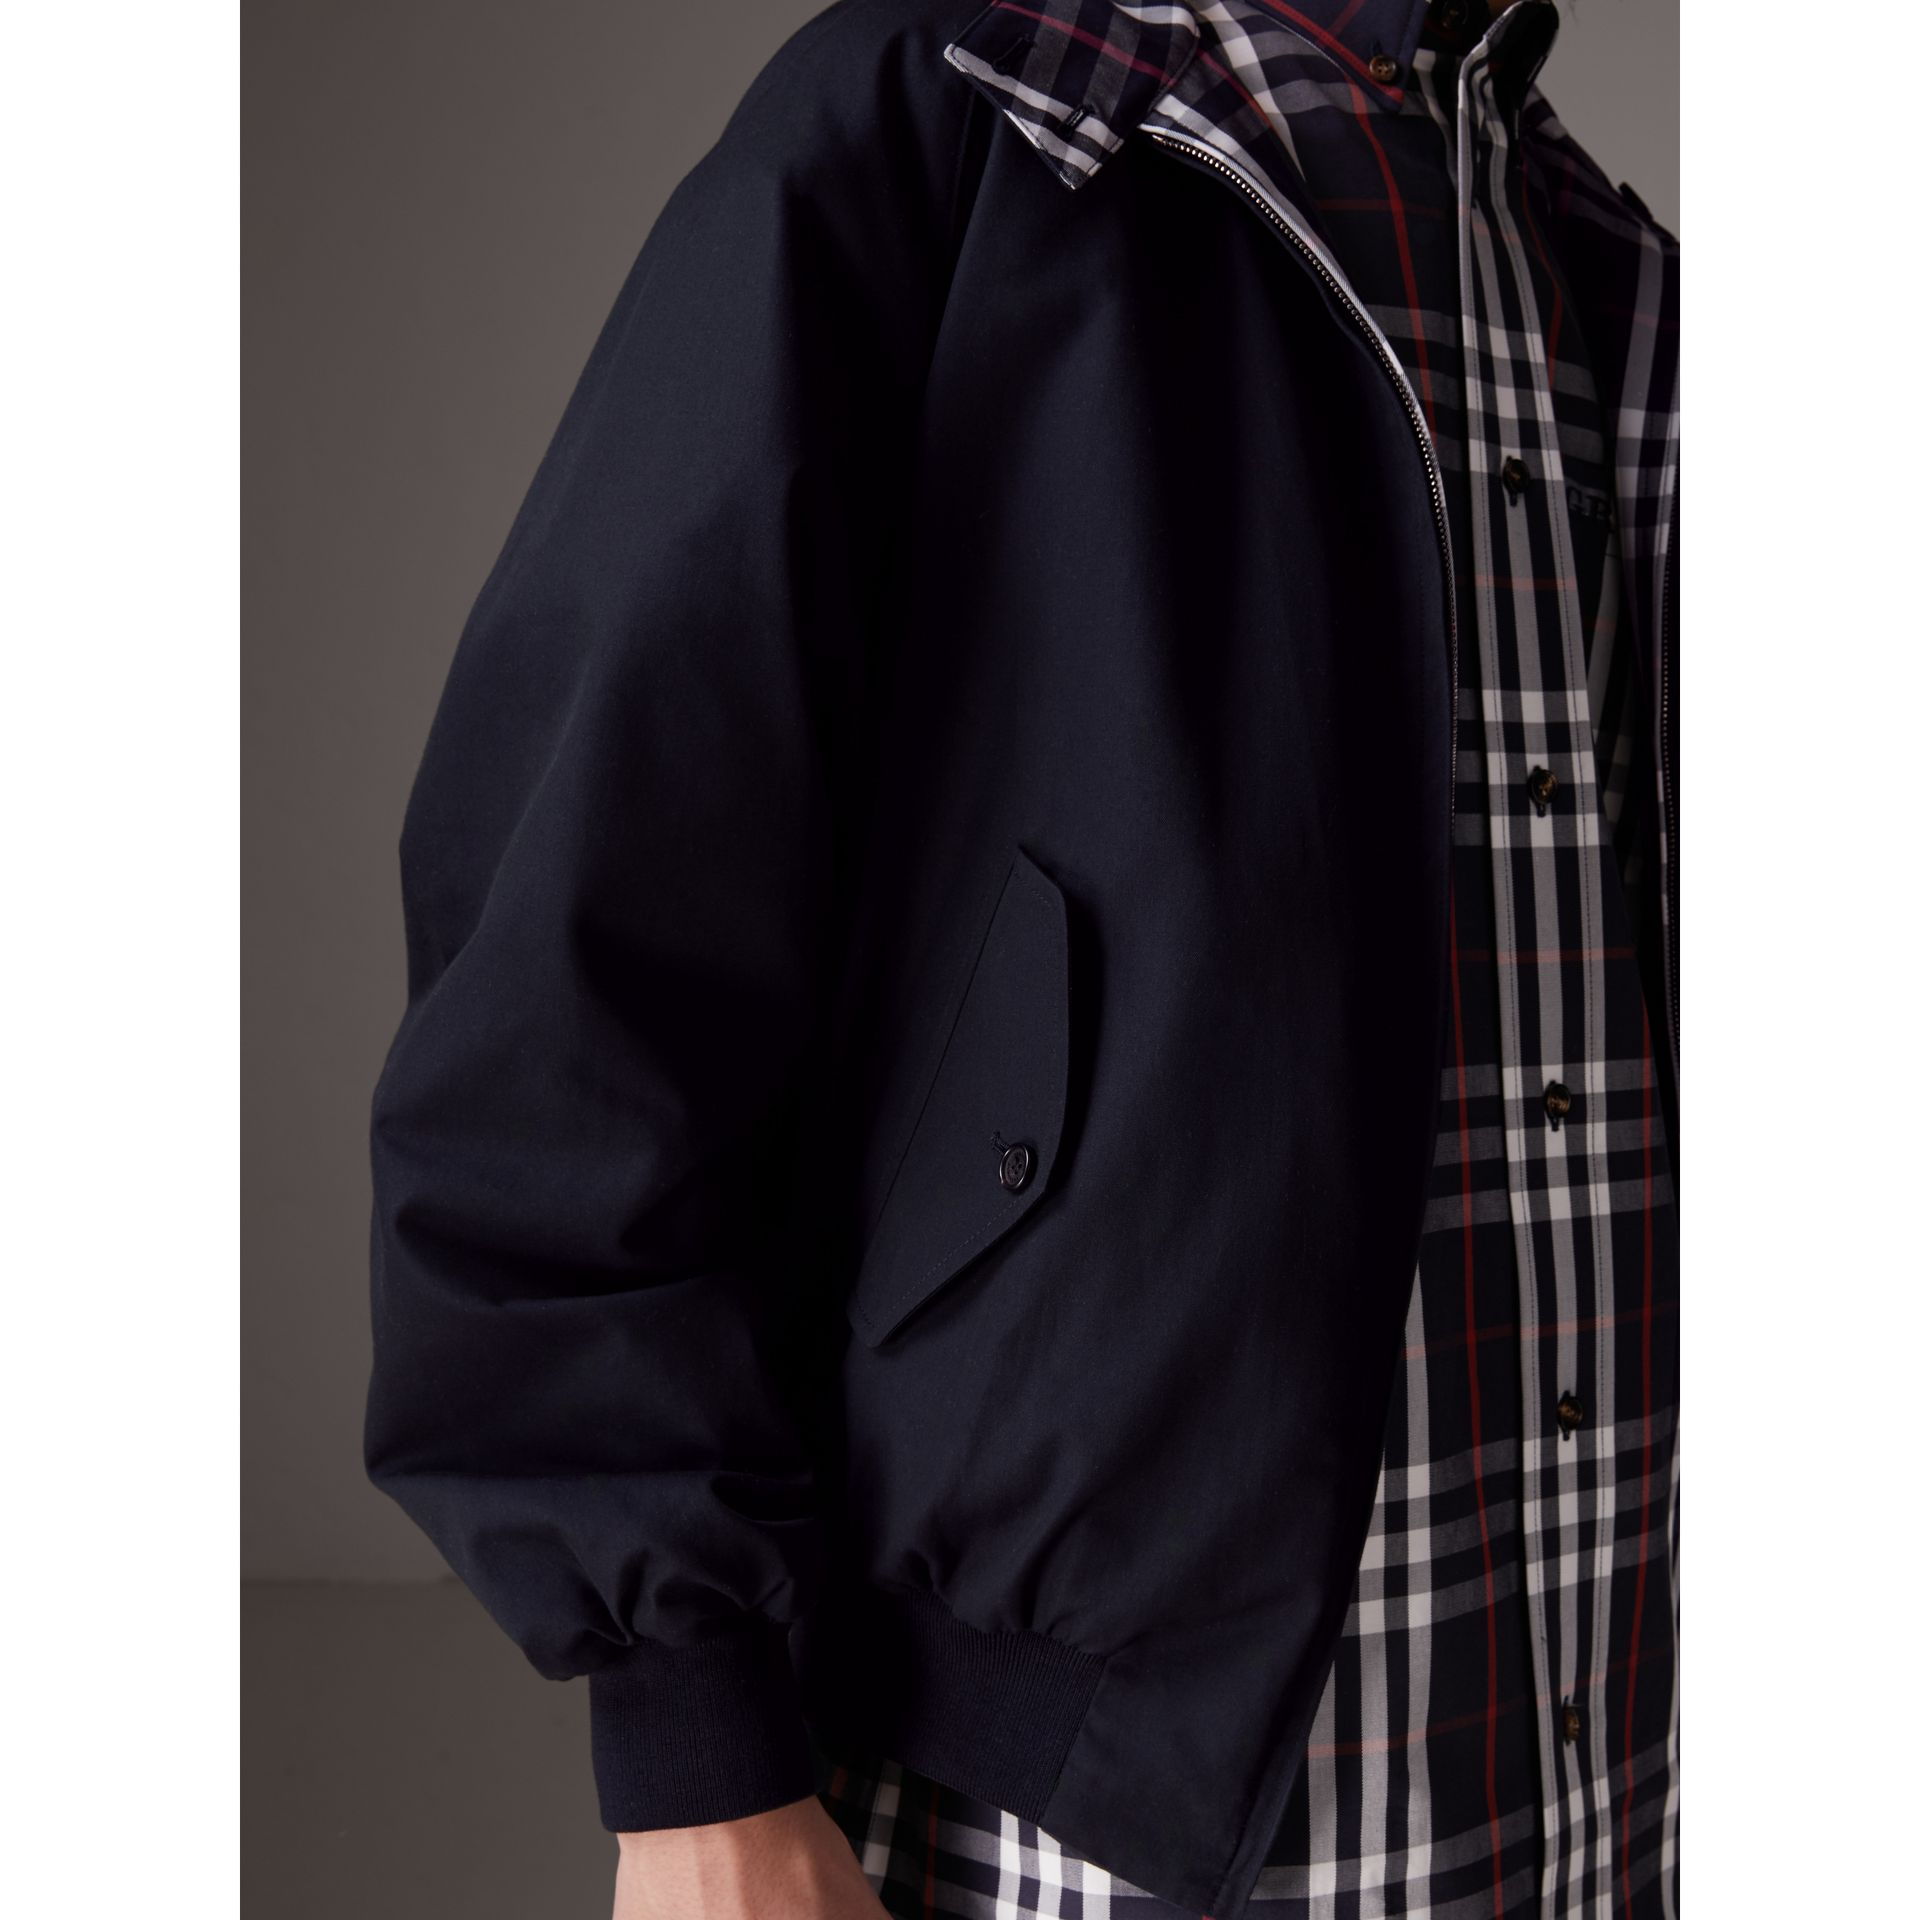 Veste Harrington réversible Gosha x Burberry (Marine) | Burberry - photo de la galerie 1